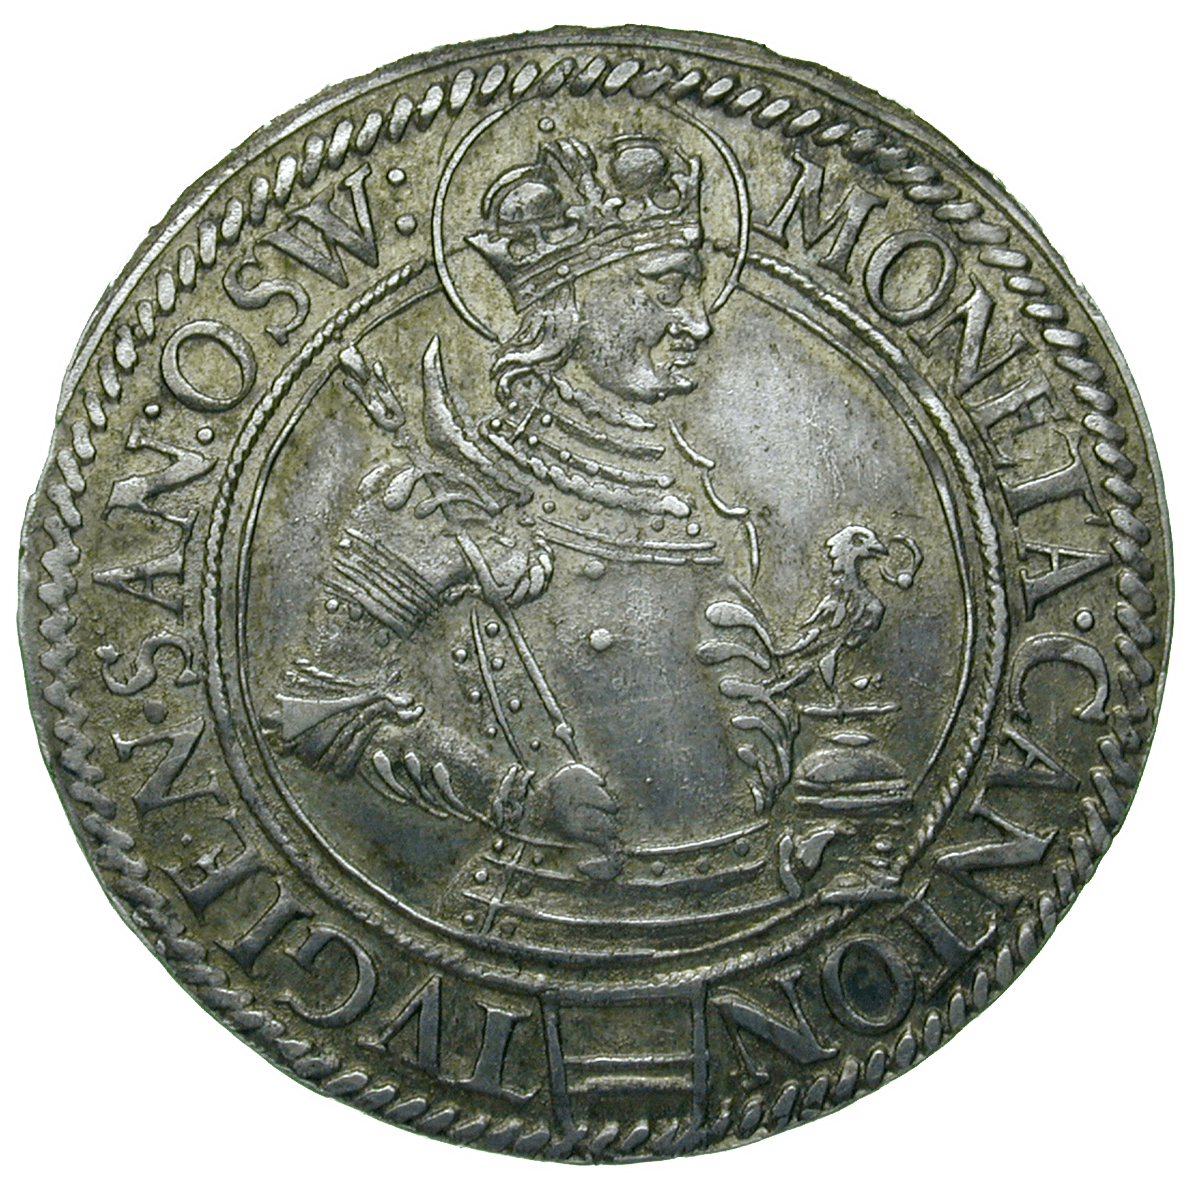 Holy Roman Empire, City of Zug, 1 Zwölfer (obverse)